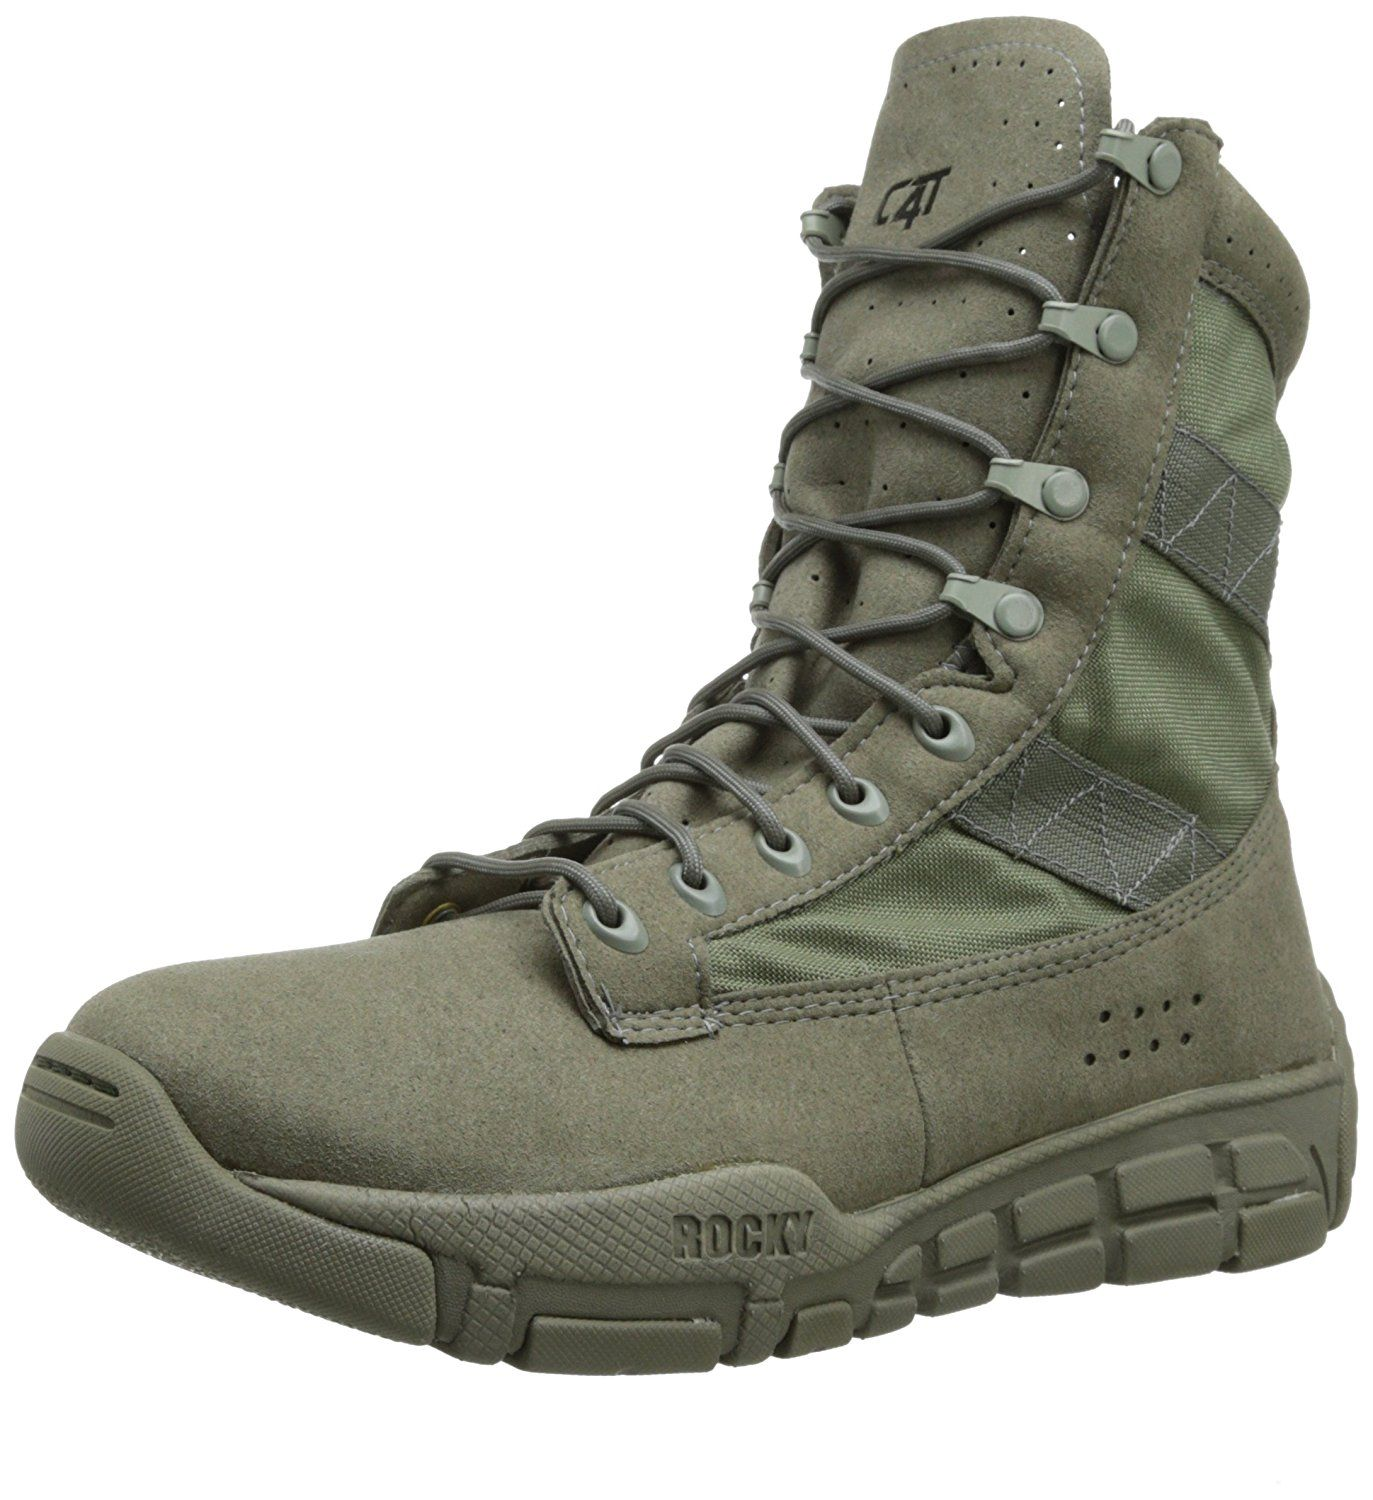 324a20d24a5 The 10 Best Lightweight Tactical Boots in 2019 - Reviewed By Experts ...